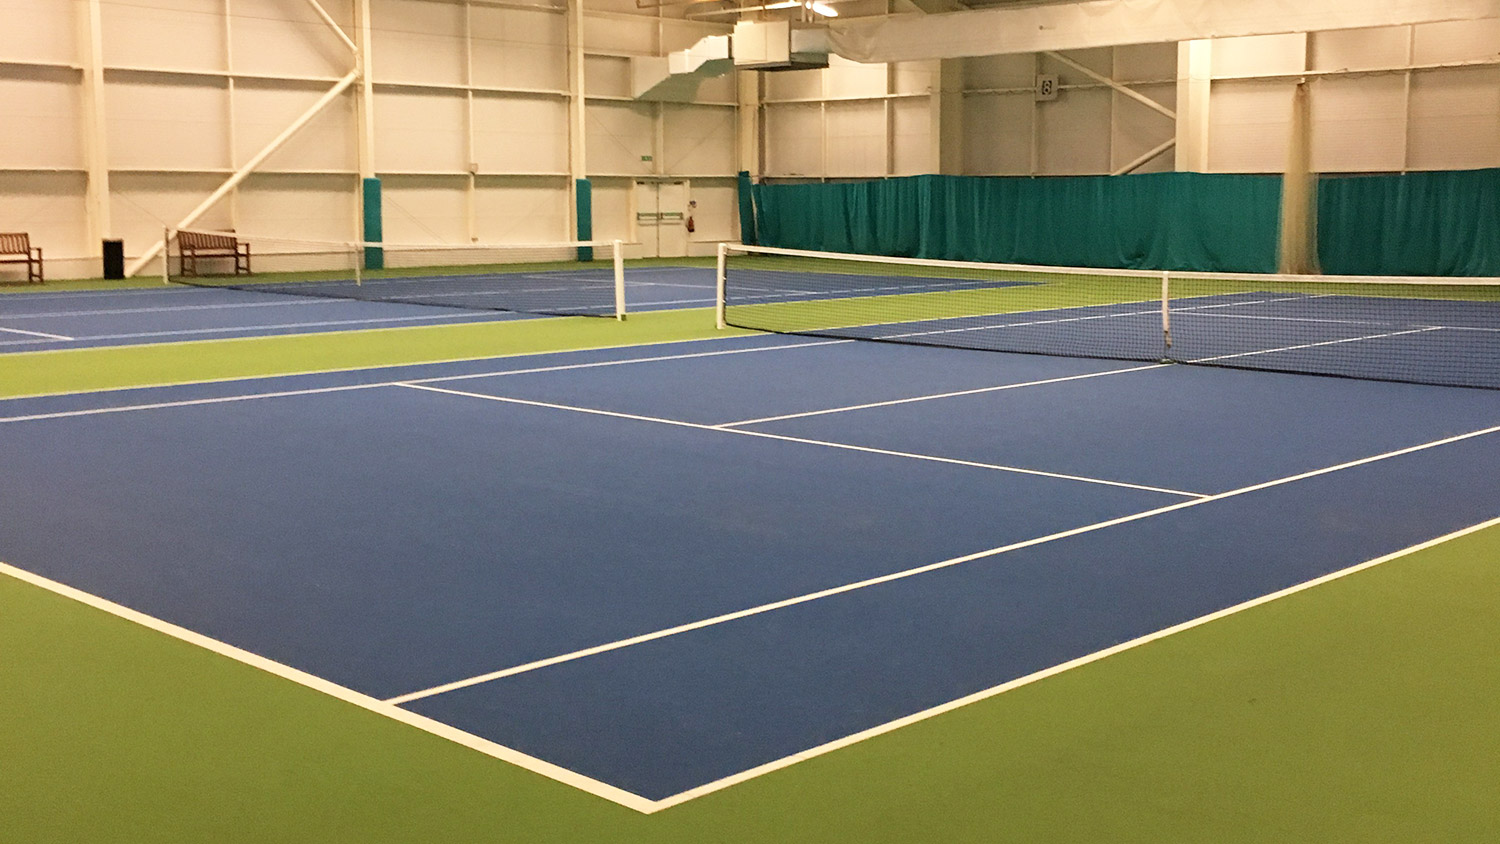 Nuffield Health Devonshire Health & Racquets Club in Plymouth